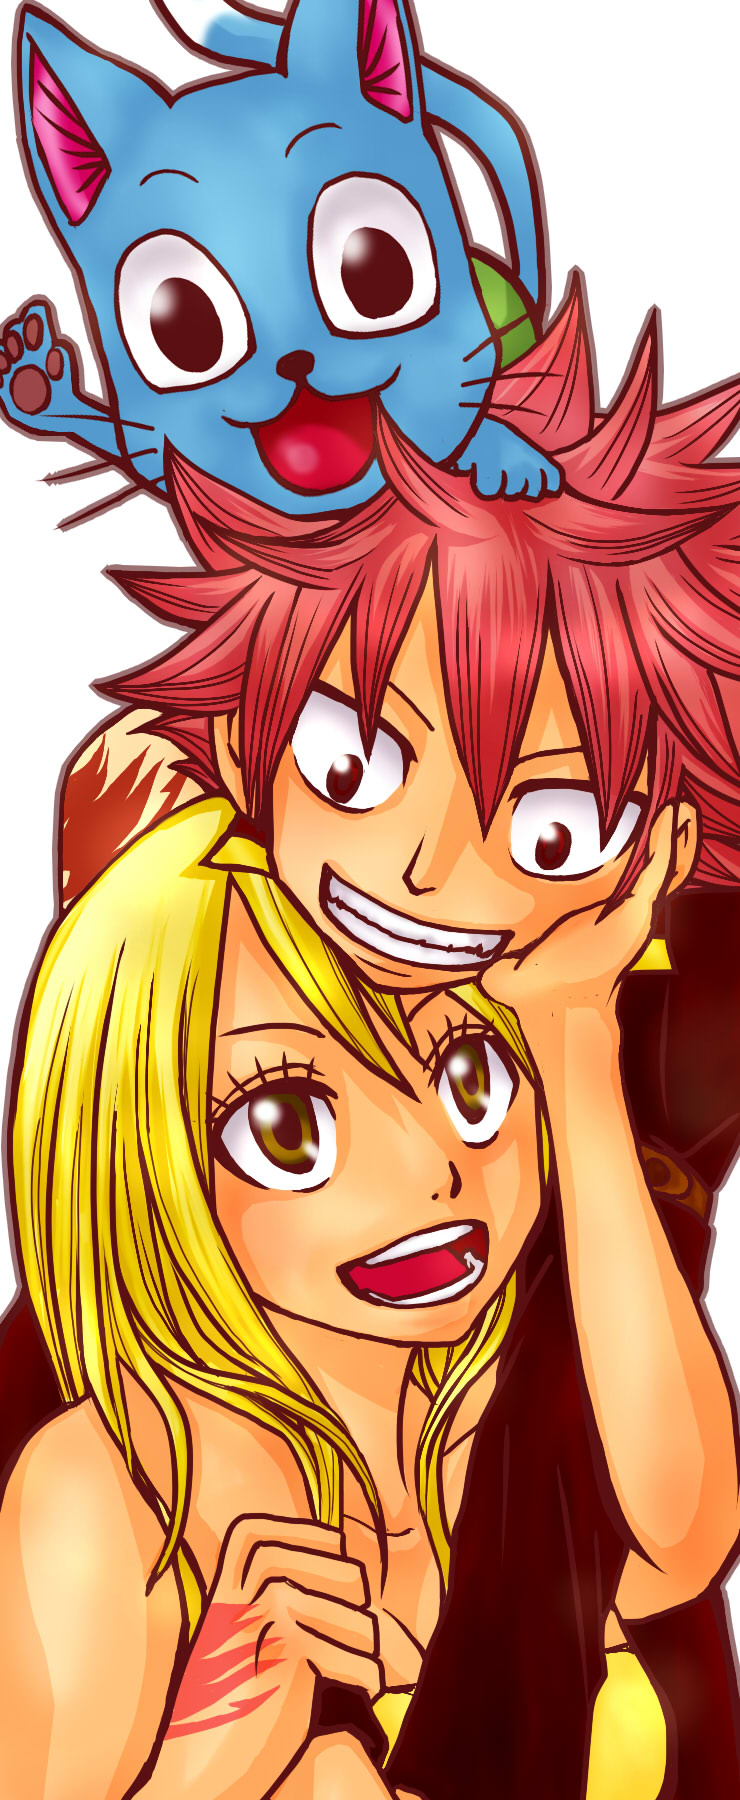 Pin natsu et lucy fairy tail asuna69 photos club adosfr on - Fairy tail happy and natsu ...